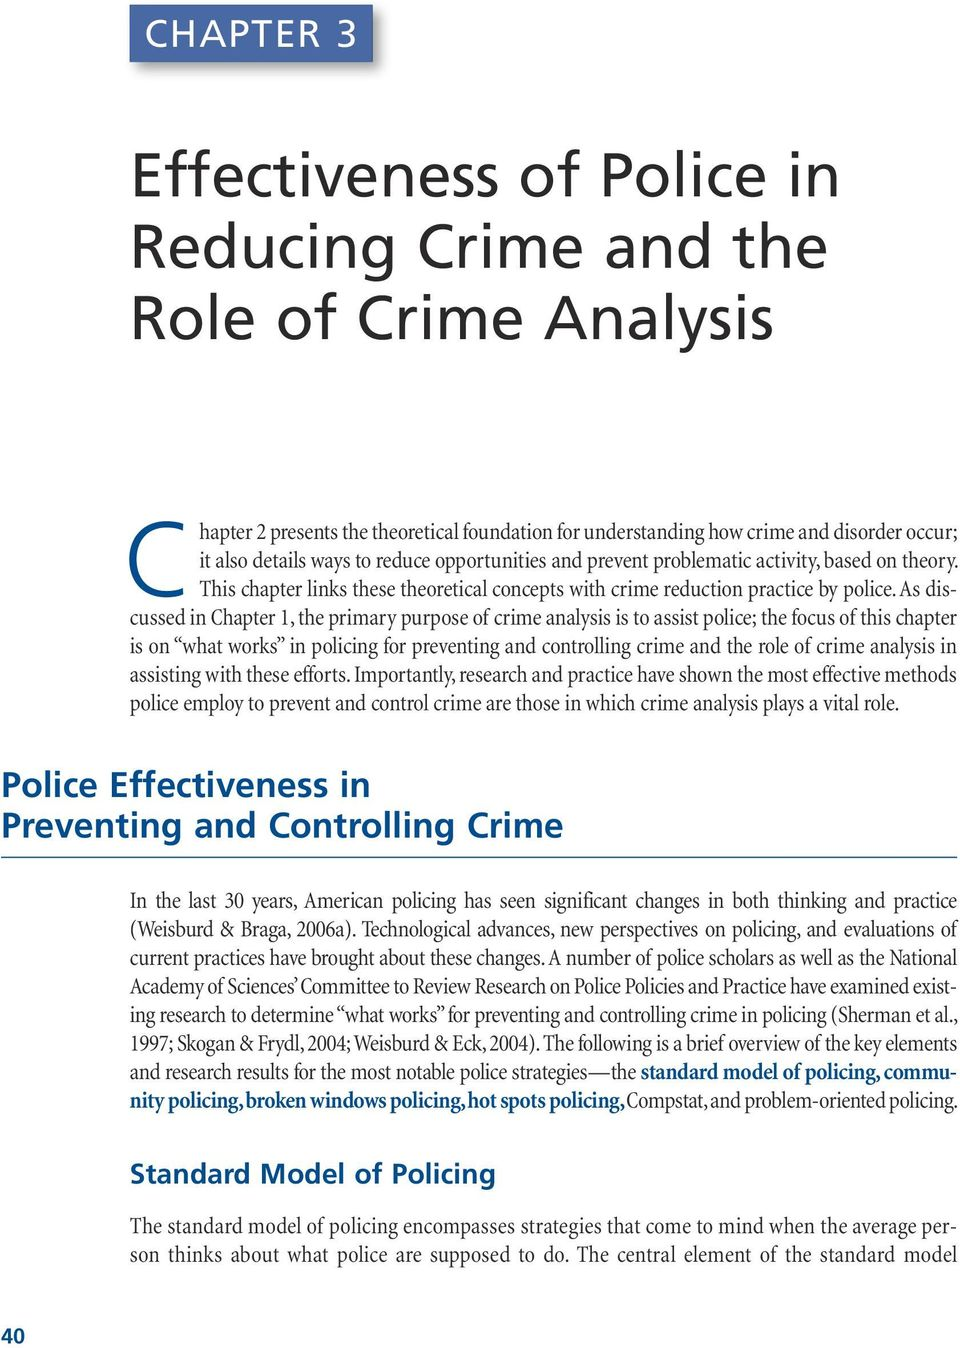 As discussed in Chapter 1, the primary purpose of crime analysis is to assist police; the focus of this chapter is on what works in policing for preventing and controlling crime and the role of crime